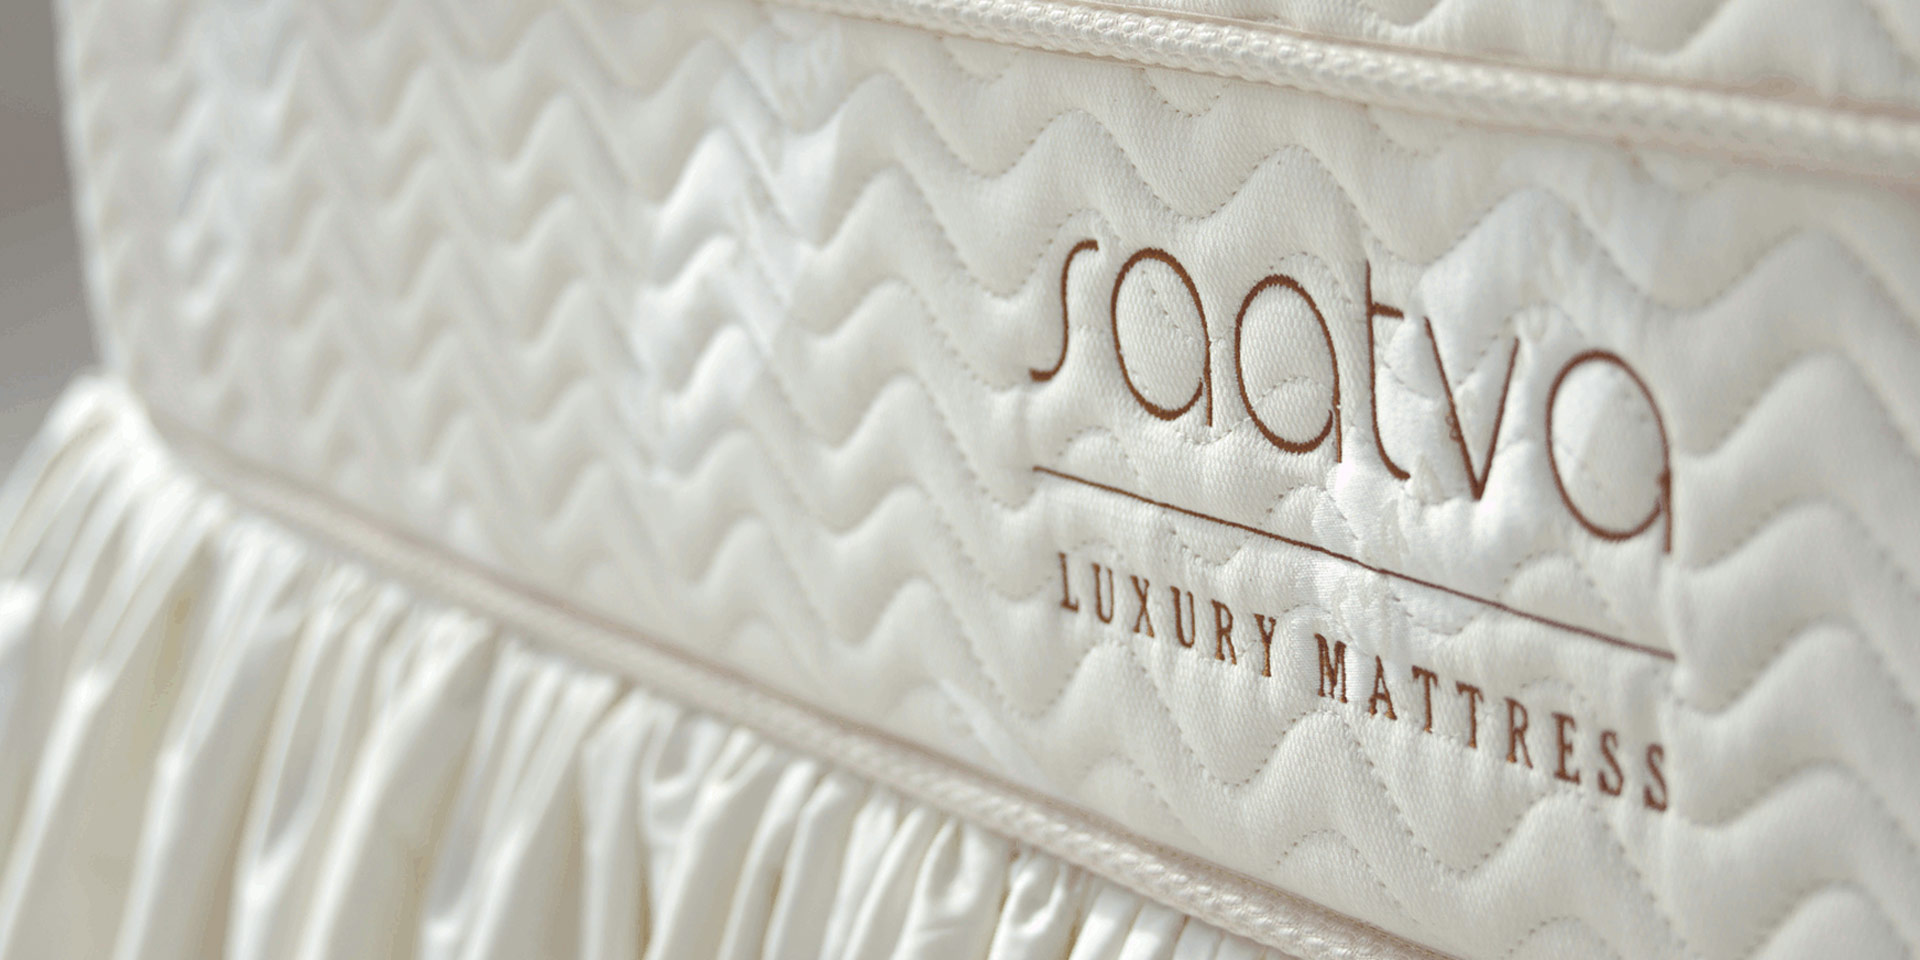 Saatva a mattress of luxury comfort soda fine for Saatva mattress